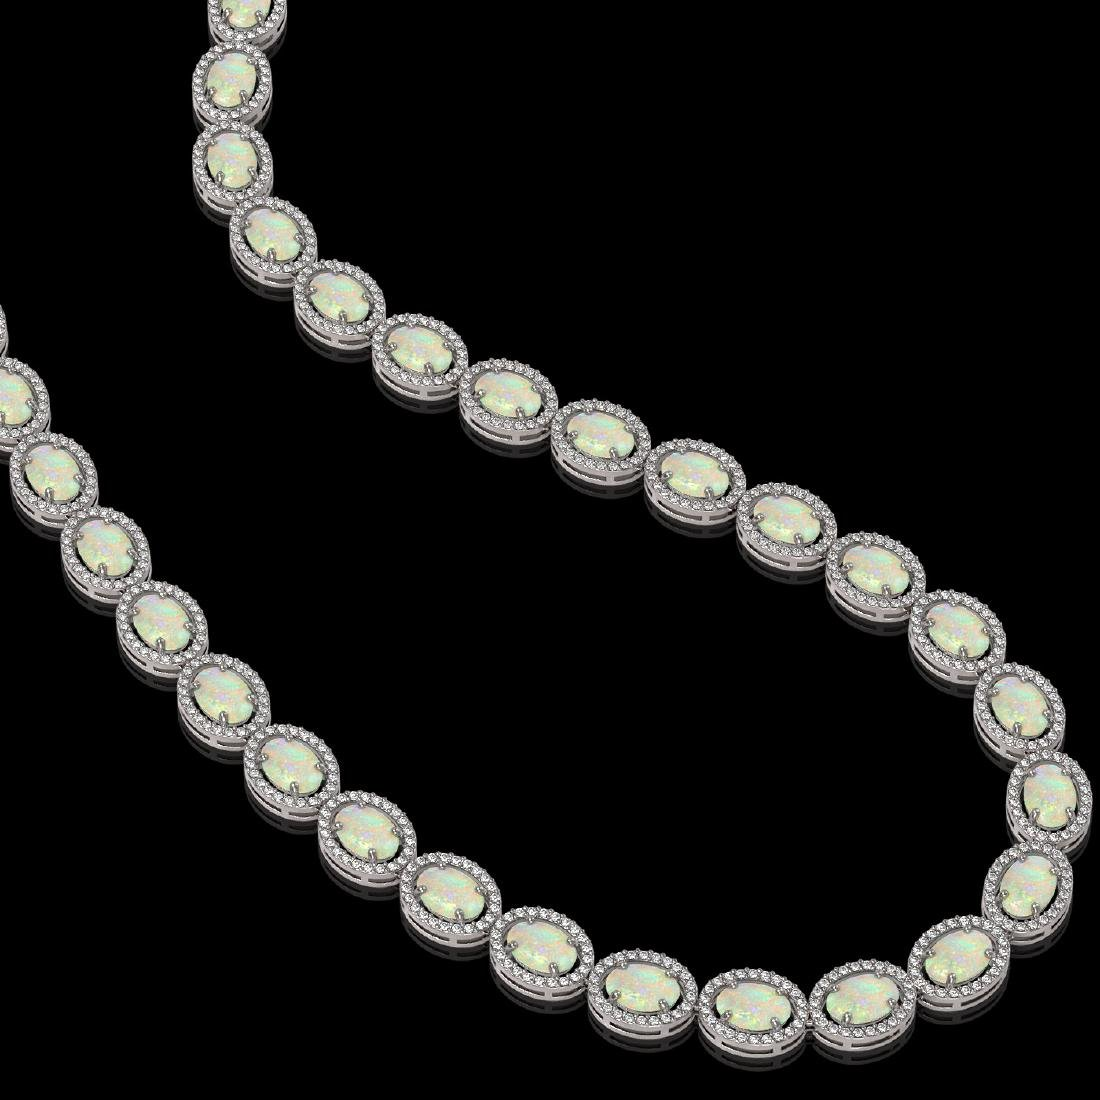 32.42 CTW Opal & Diamond Halo Necklace 10K White Gold - 2